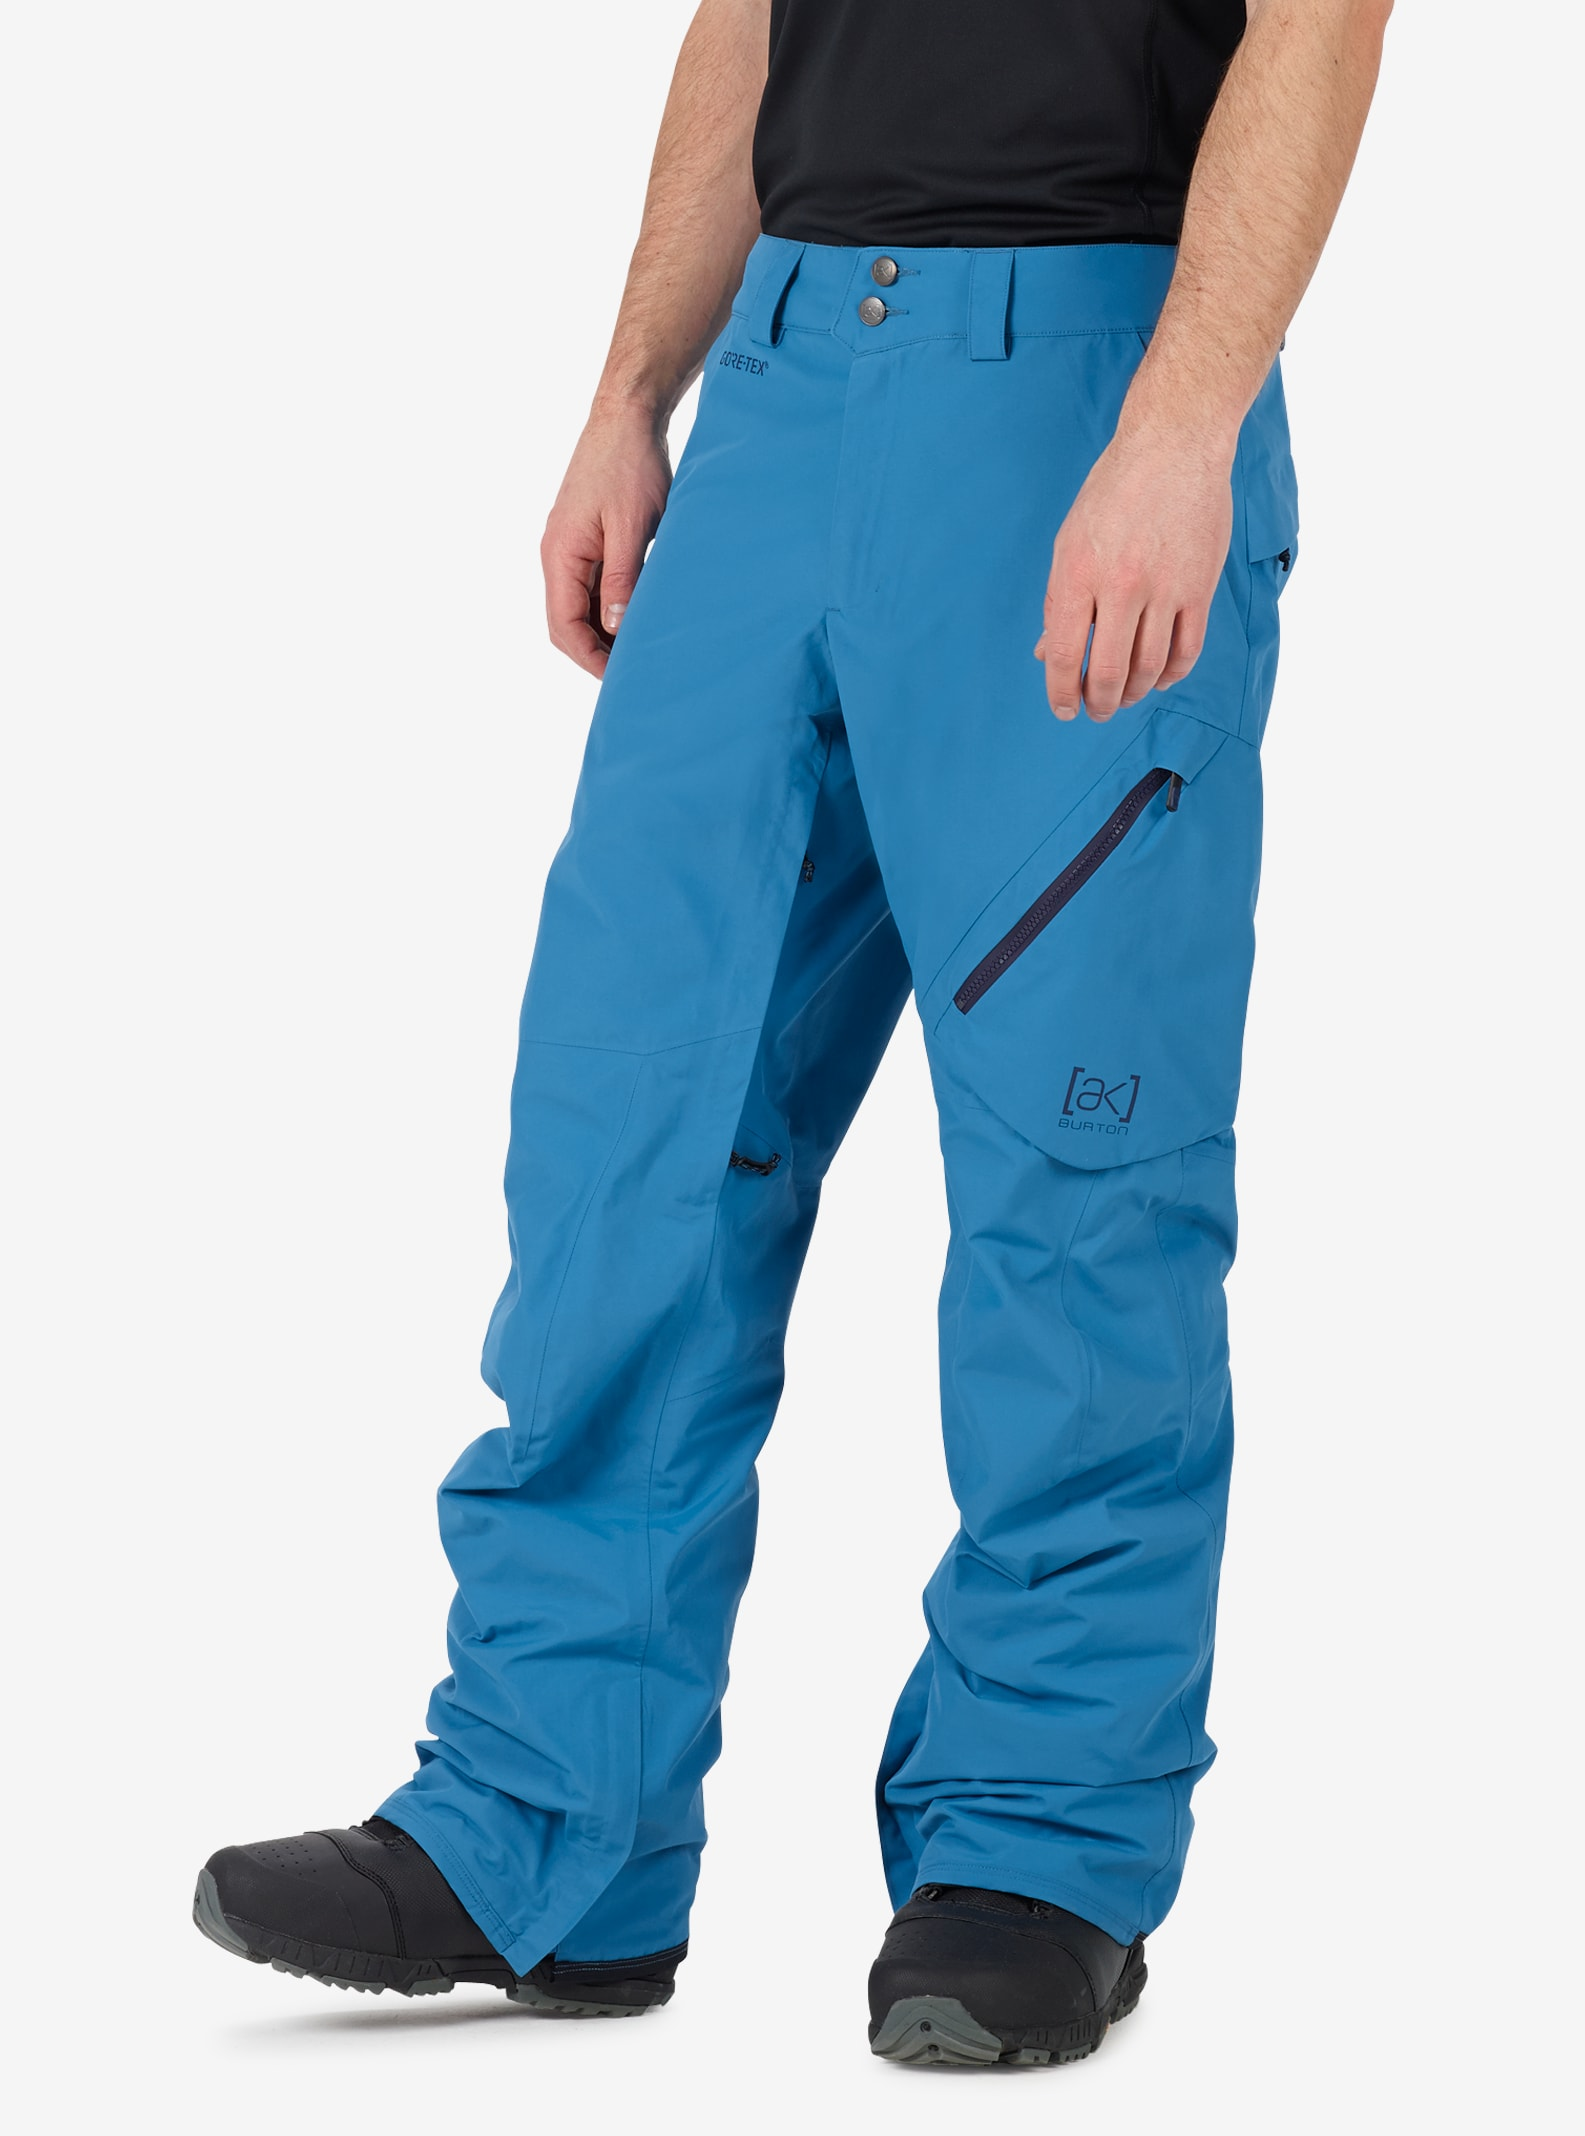 Men's Burton [ak] GORE‑TEX® Cyclic Pant shown in Mountaineer